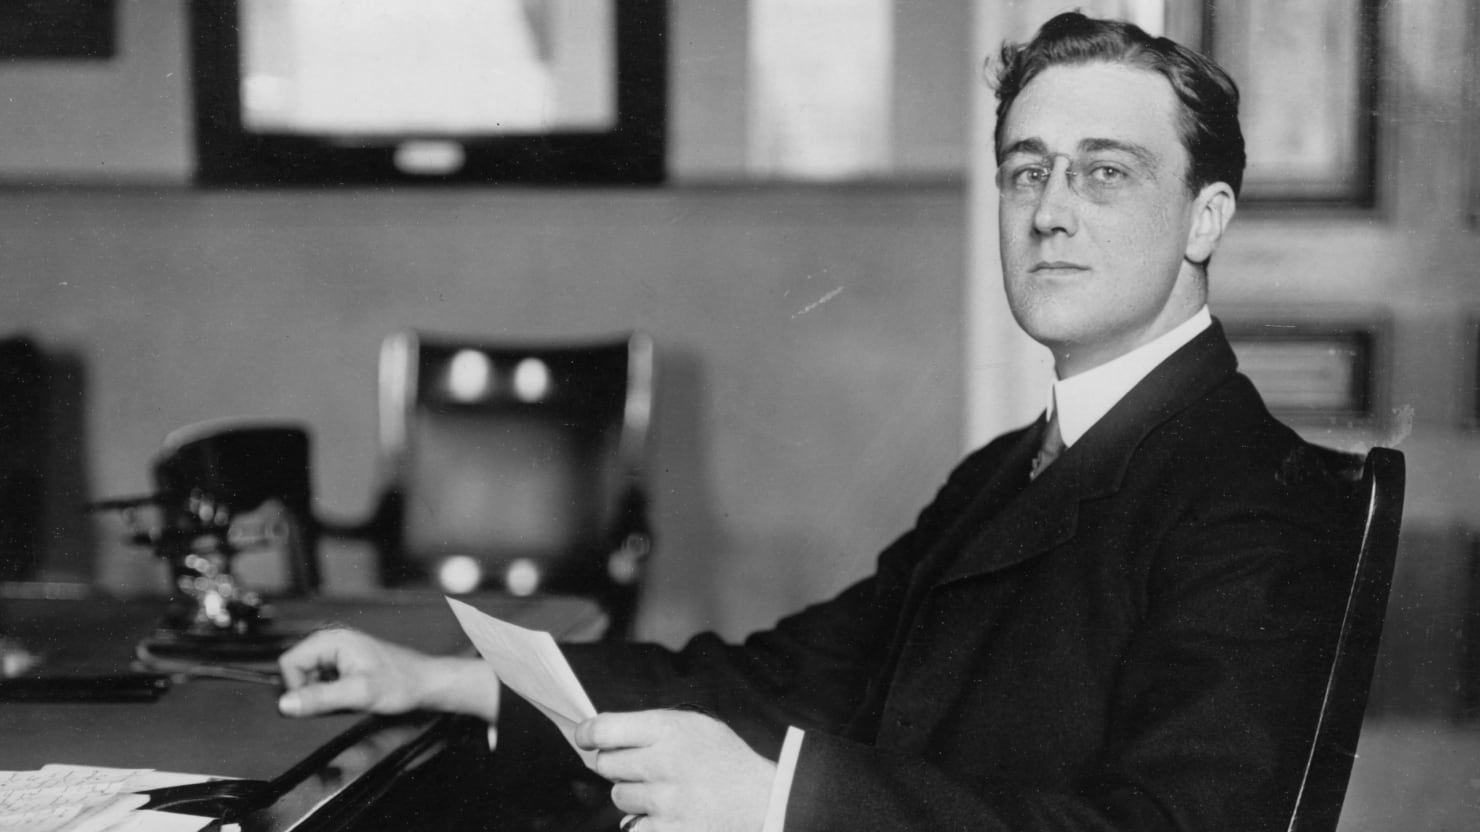 a biography of franklin delano roosevelt a president of the united states of america This is a biography of franklin d roosevelt a president and true american hero president franklin d roosevelt was both a manor-born cousin of teddy roosevelt and a man of the people he took.